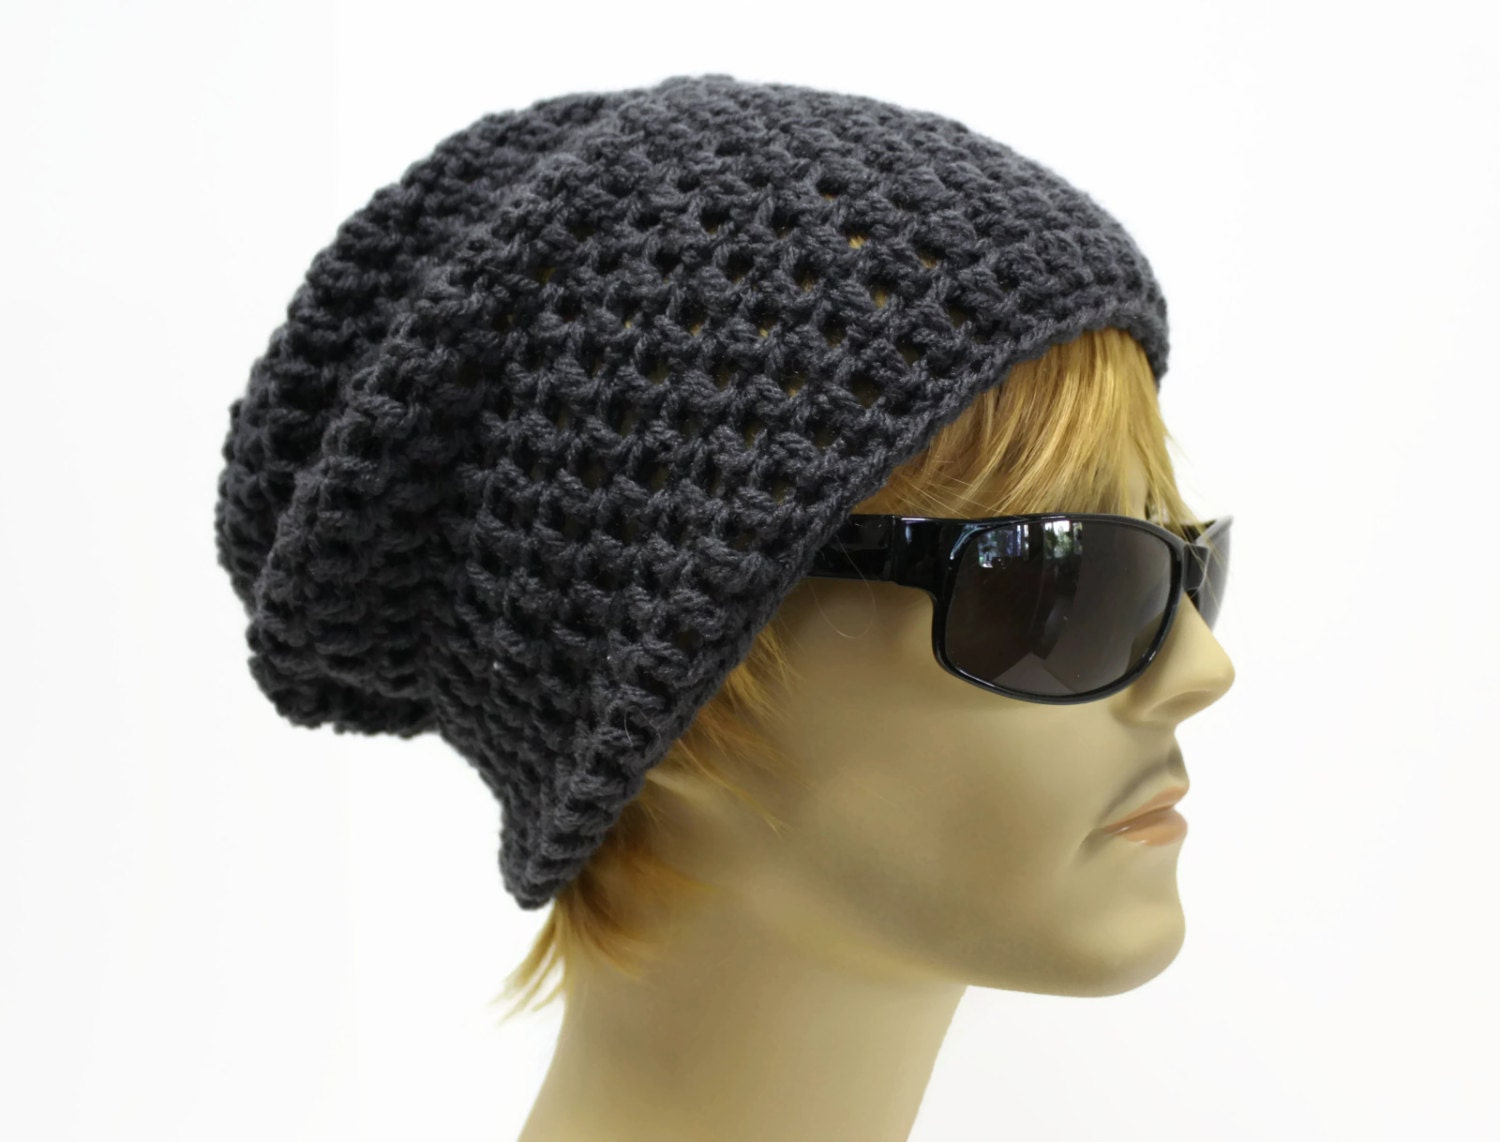 Discover men's caps and hats. Choose from beanie hats, baseball caps or a trendy trilby. We have suitable headgear for everyone. Shop today at ASOS.